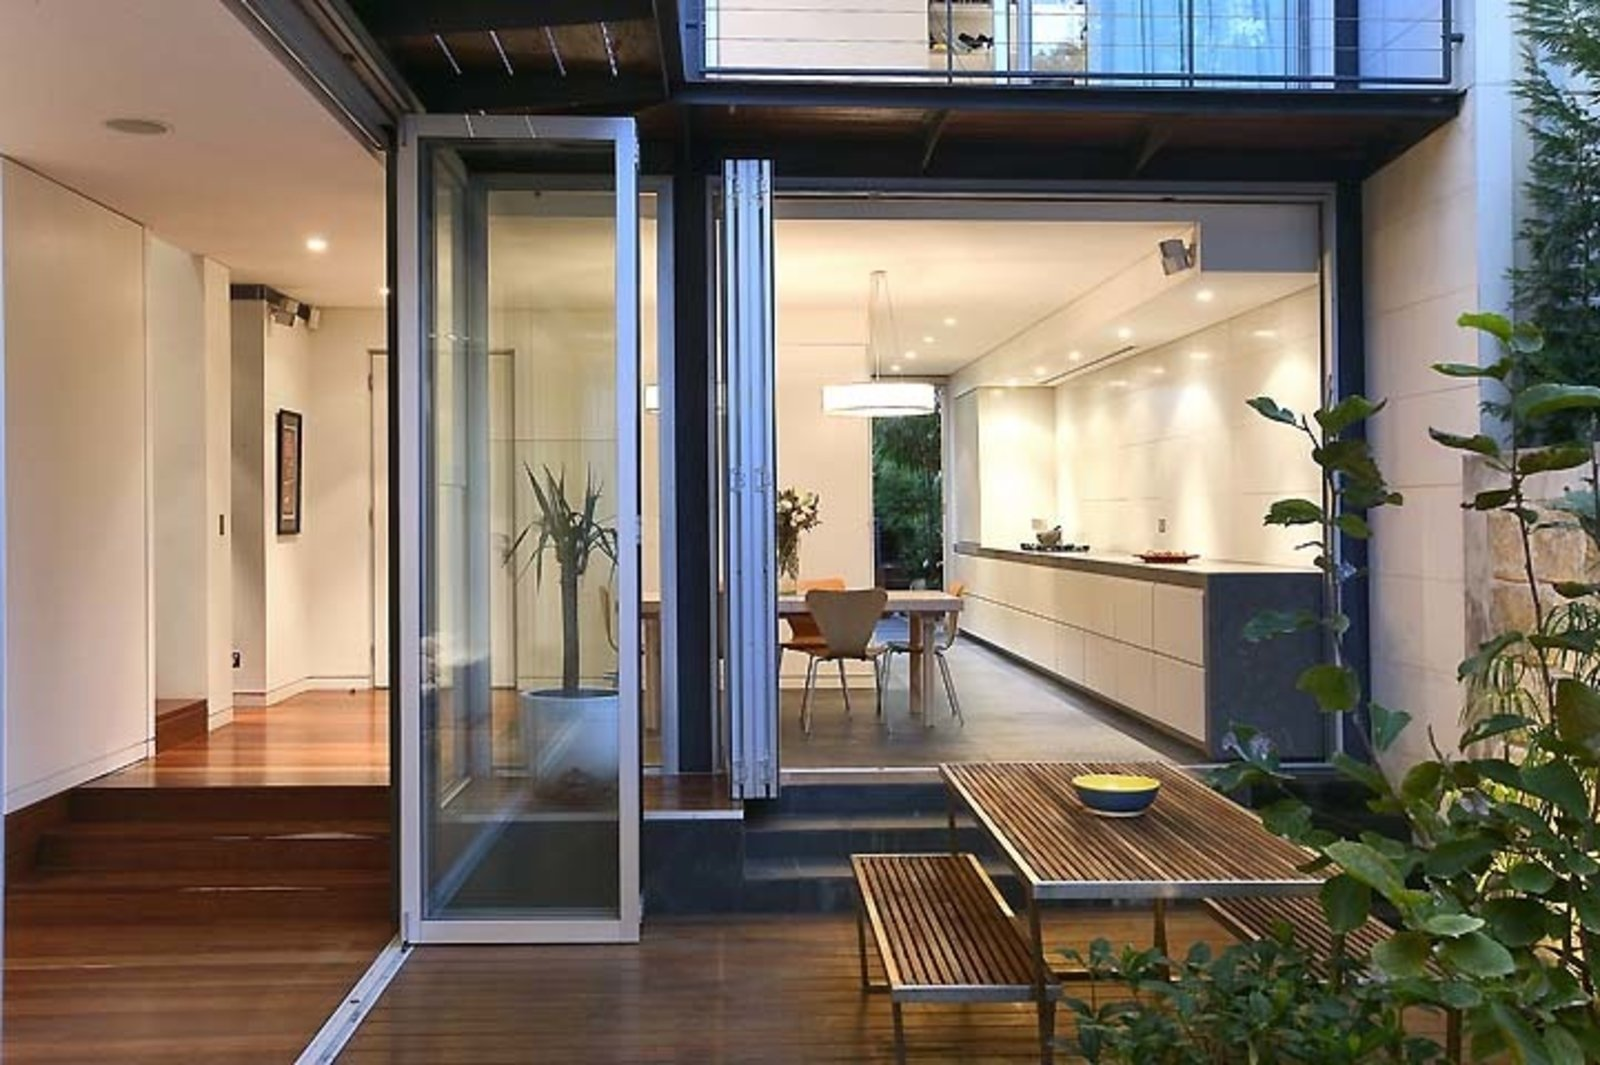 Sleek Architect's Home (Sydney, Australia)  Photo 12 of 16 in 15 Modern Summer Rentals